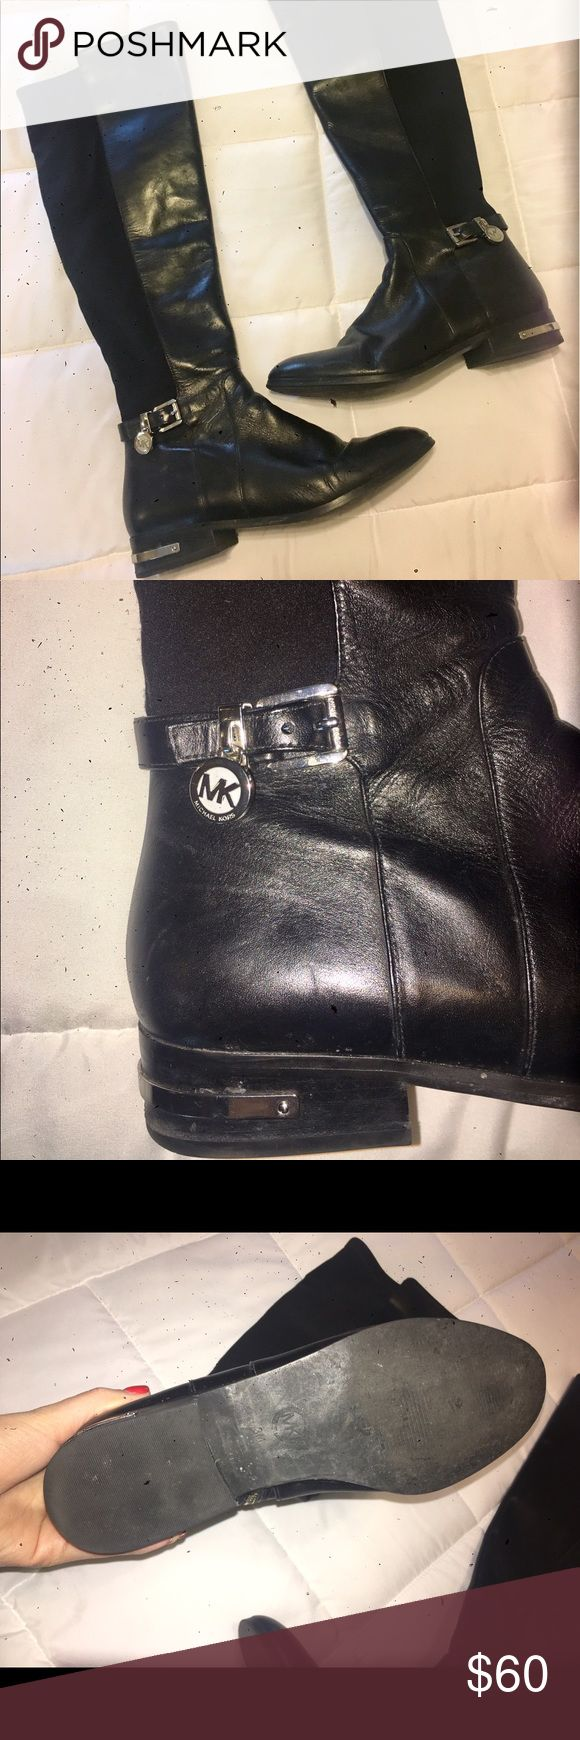 Michael Kors Hamilton black stretch riding boots! Gorgeous black leather riding boots! Received as a gift for Christmas, but too small for me! Worn once- and still in stores! Size 8. Make me an offer! Michael Kors Shoes Combat & Moto Boots